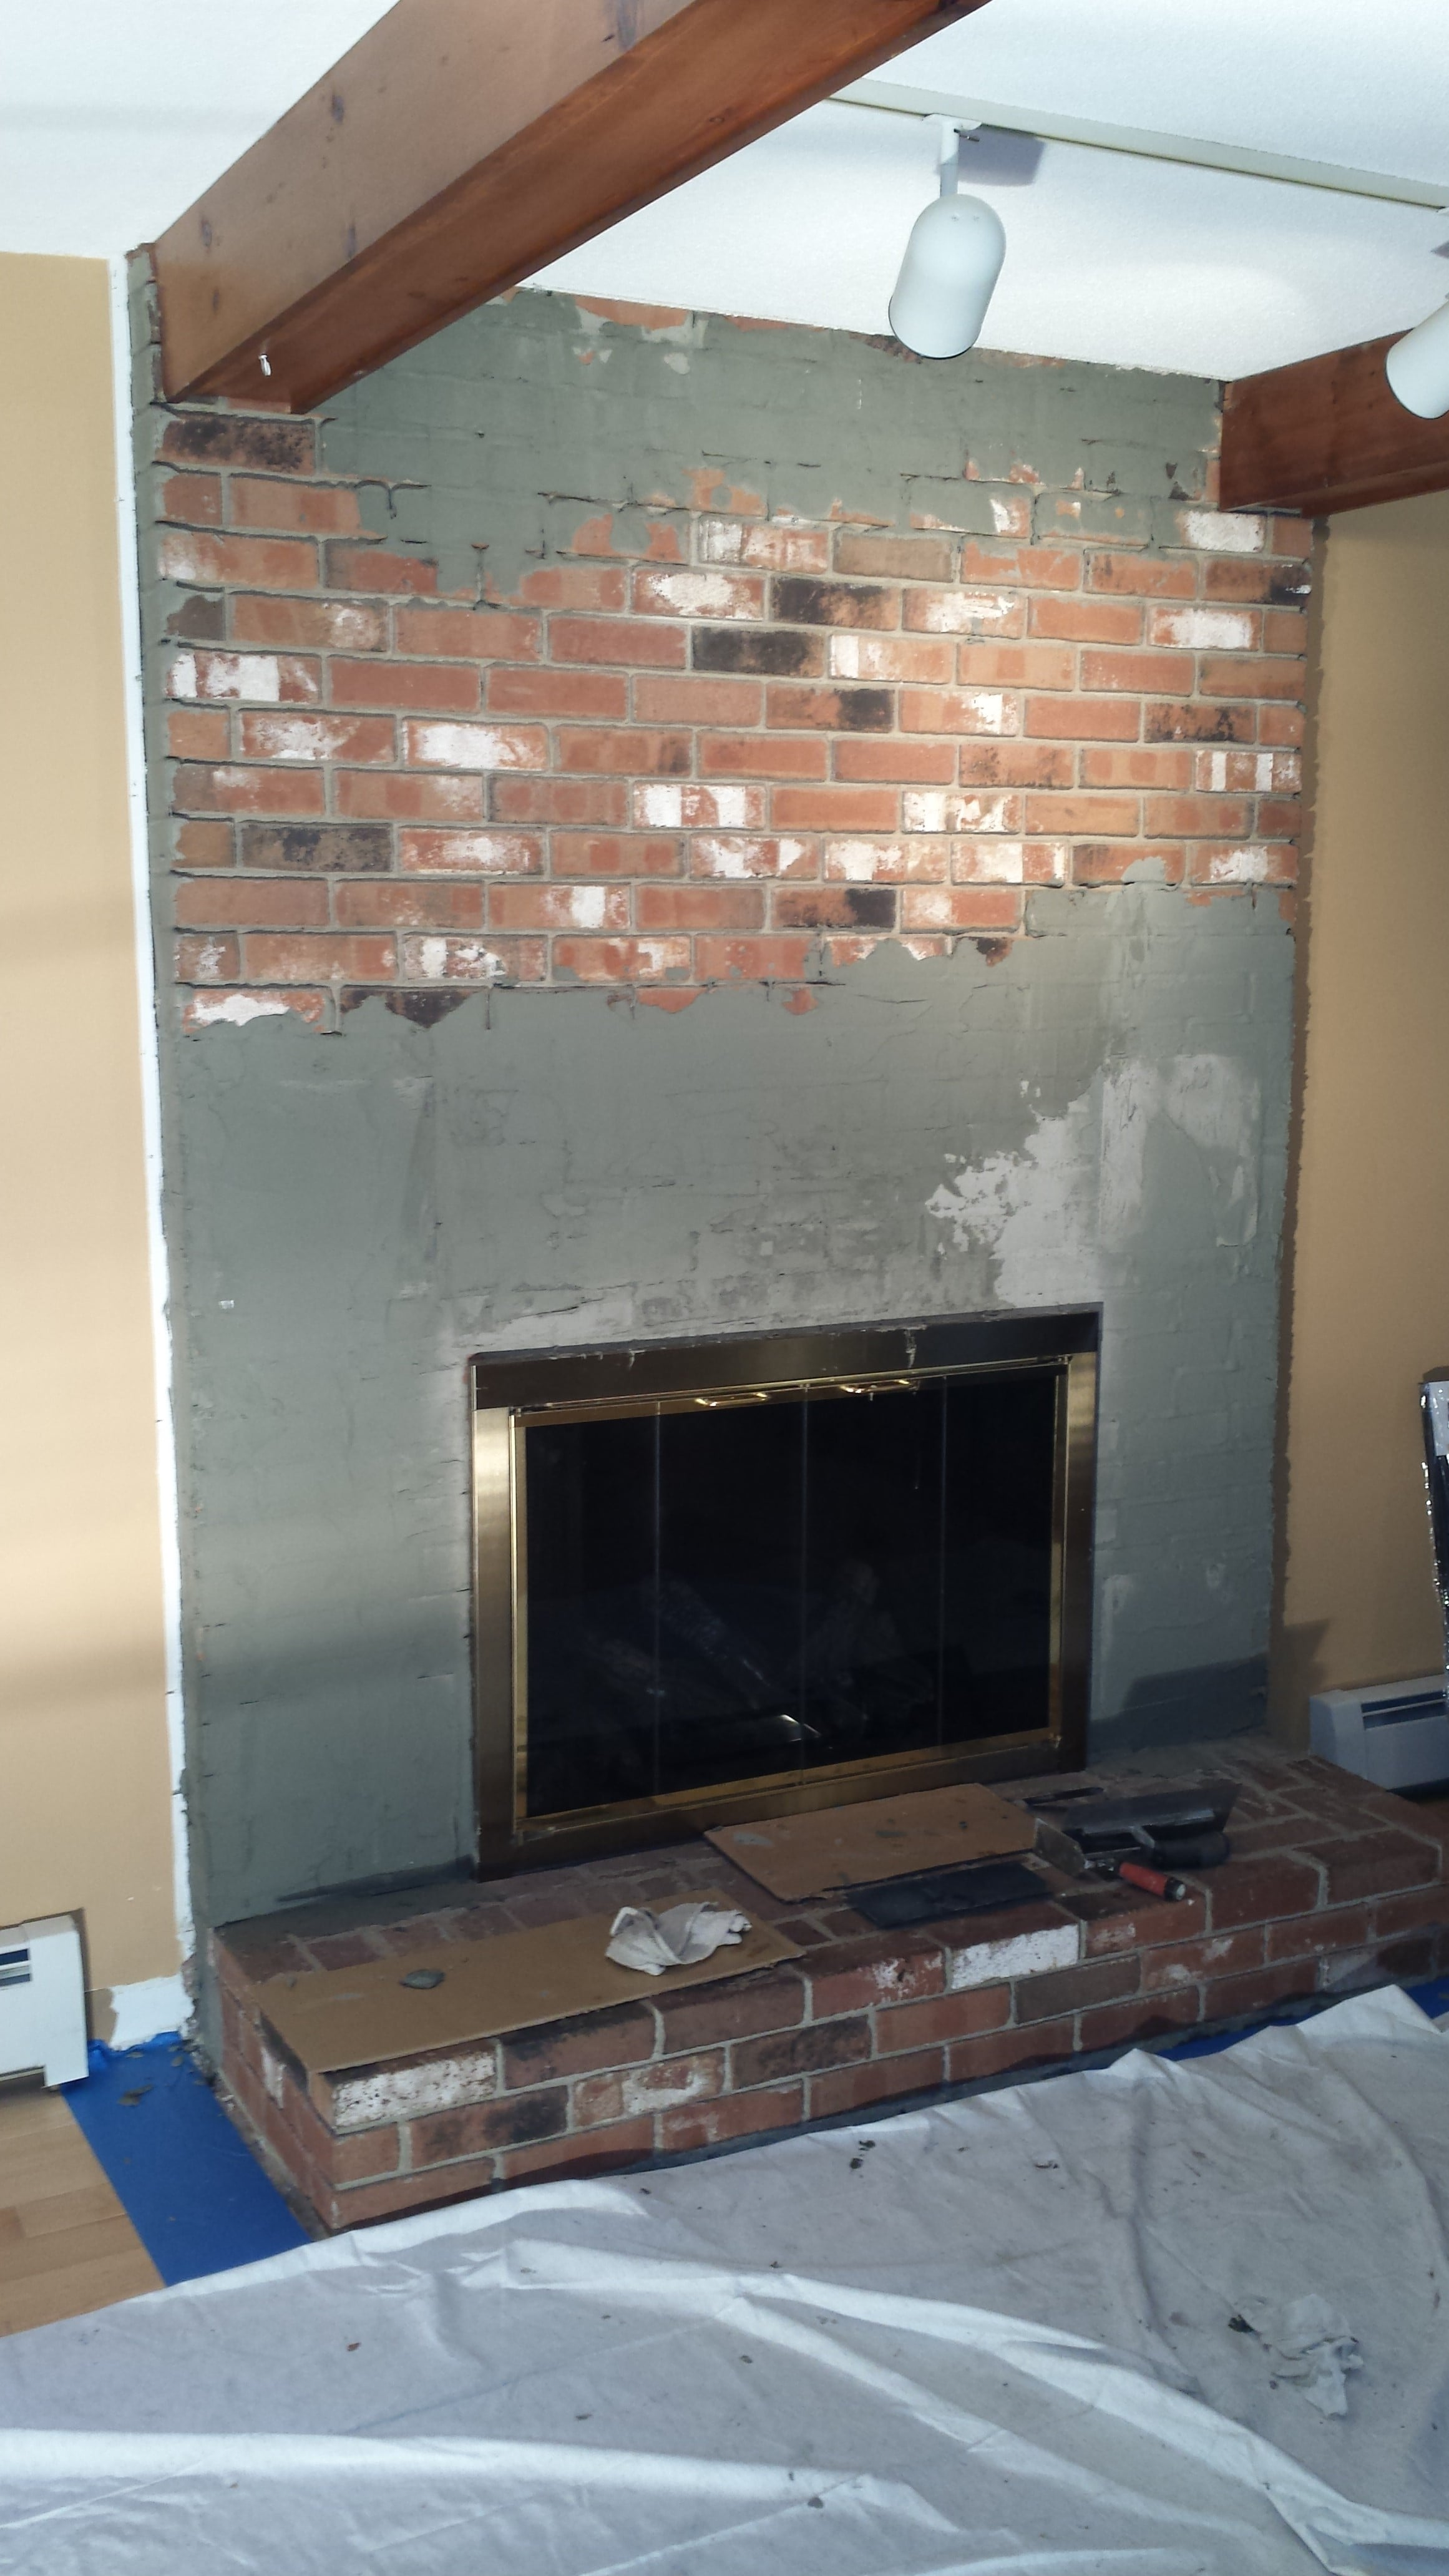 Old brick fireplace receiving a masonry skim coat to prep it for installation of Norstone Aztec XL Stone Veneer